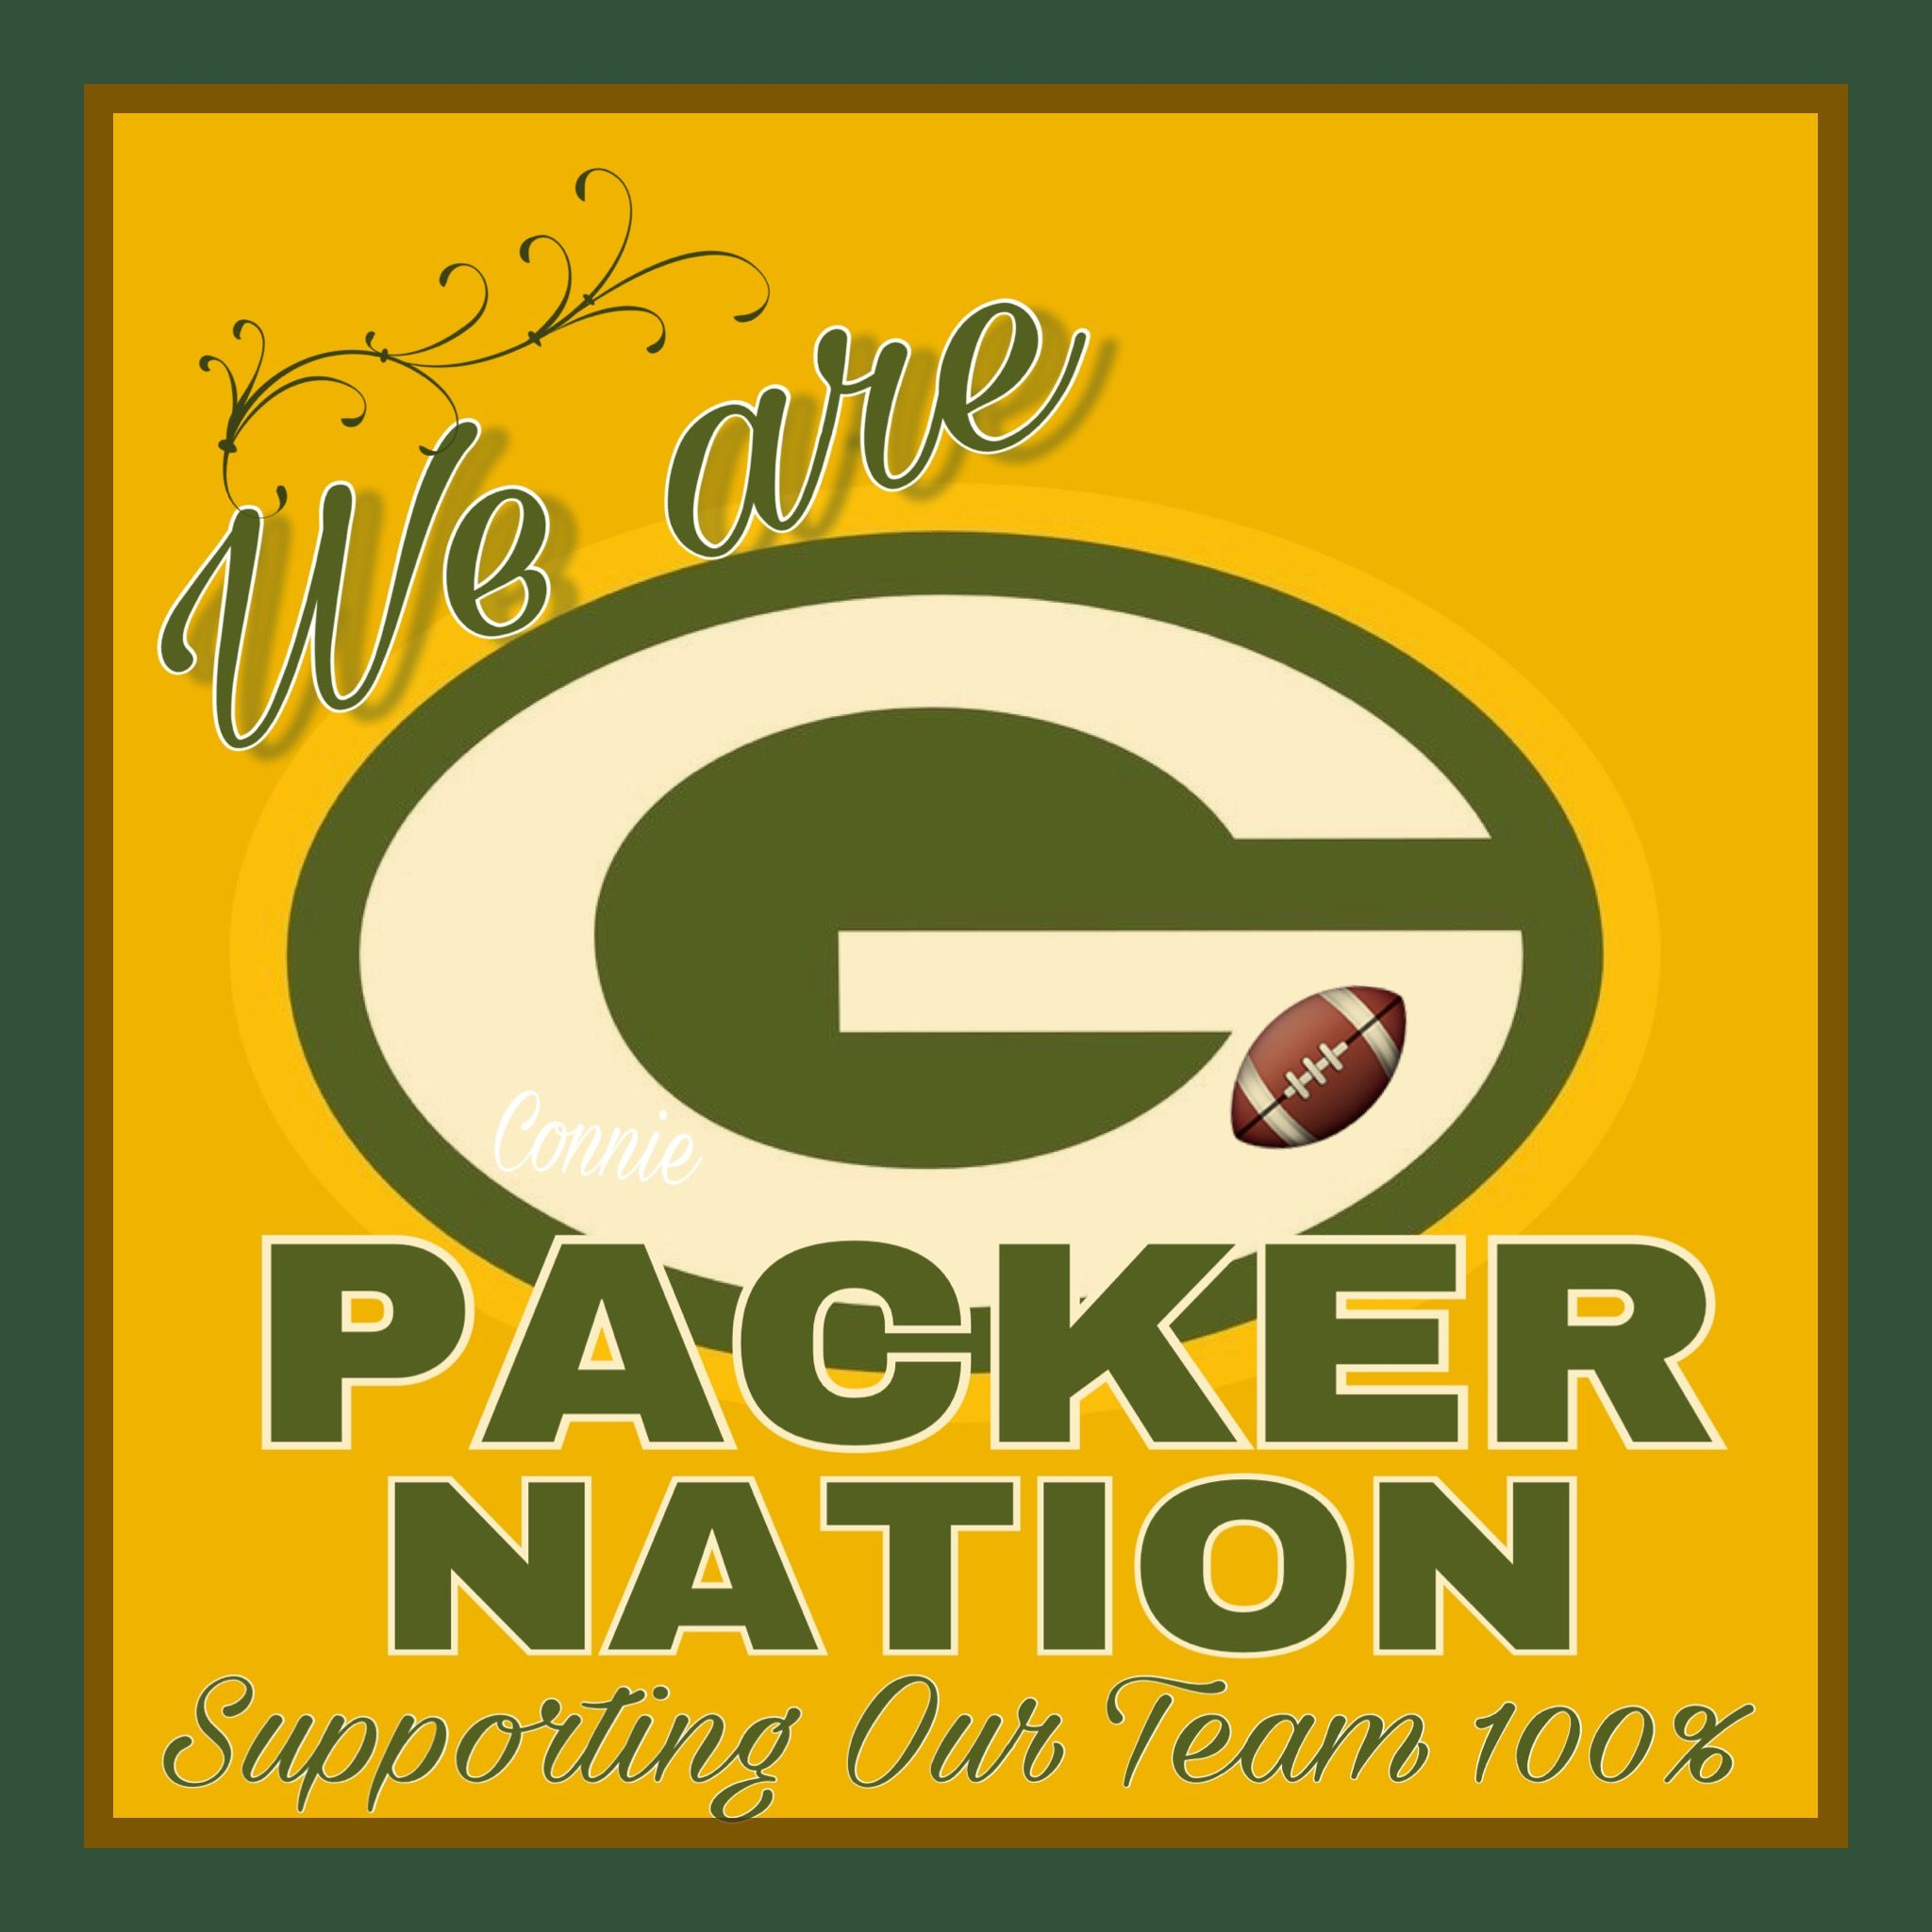 Love My Team Green Bay Packers Funny Green Bay Packers Clothing Green Bay Packers Crafts